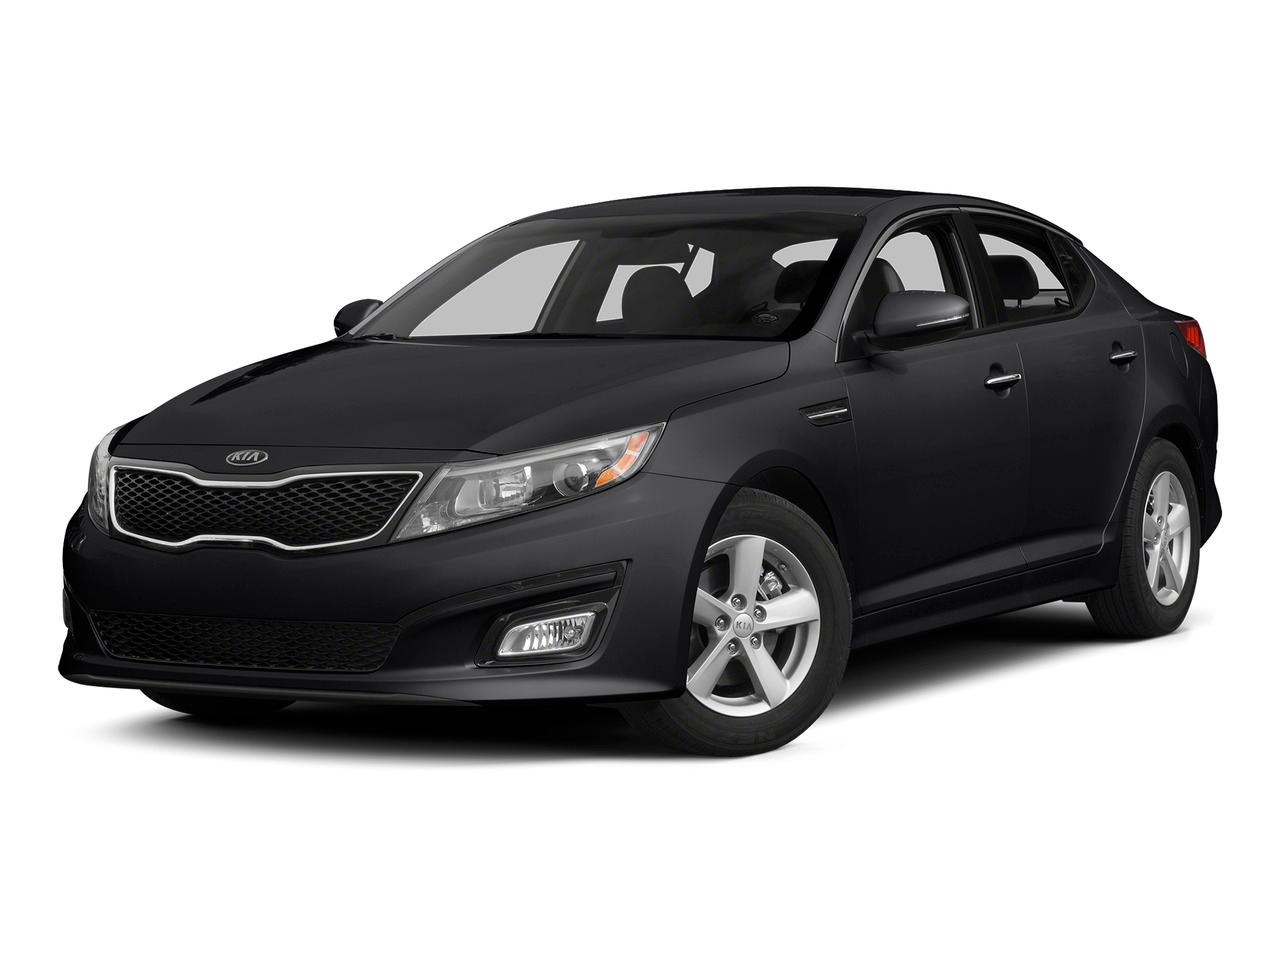 2015 Kia Optima Vehicle Photo in Portland, OR 97225